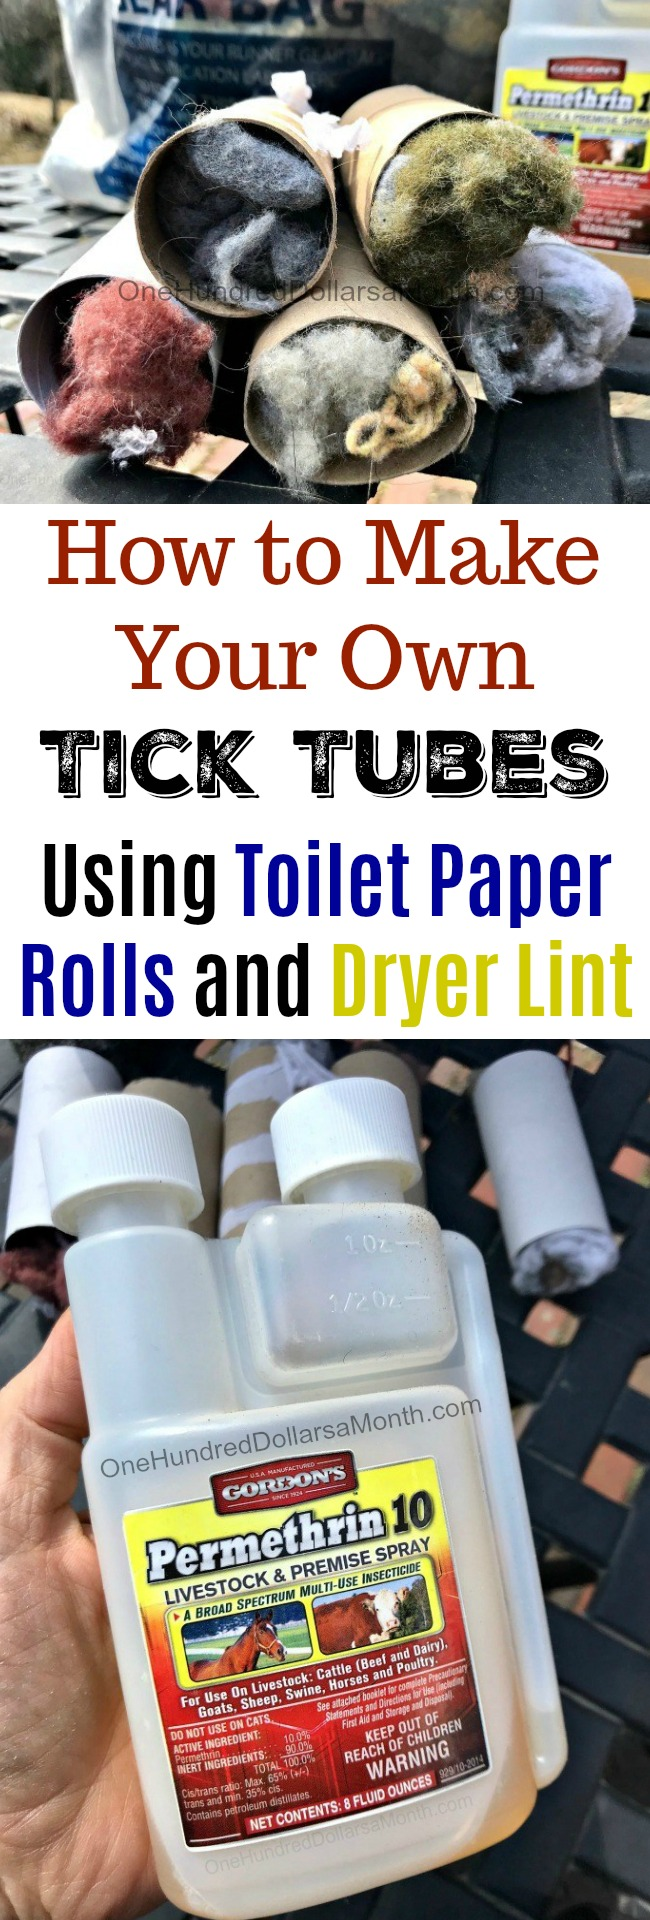 How to Make Your Own Tick Tubes - One Hundred Dollars a Month